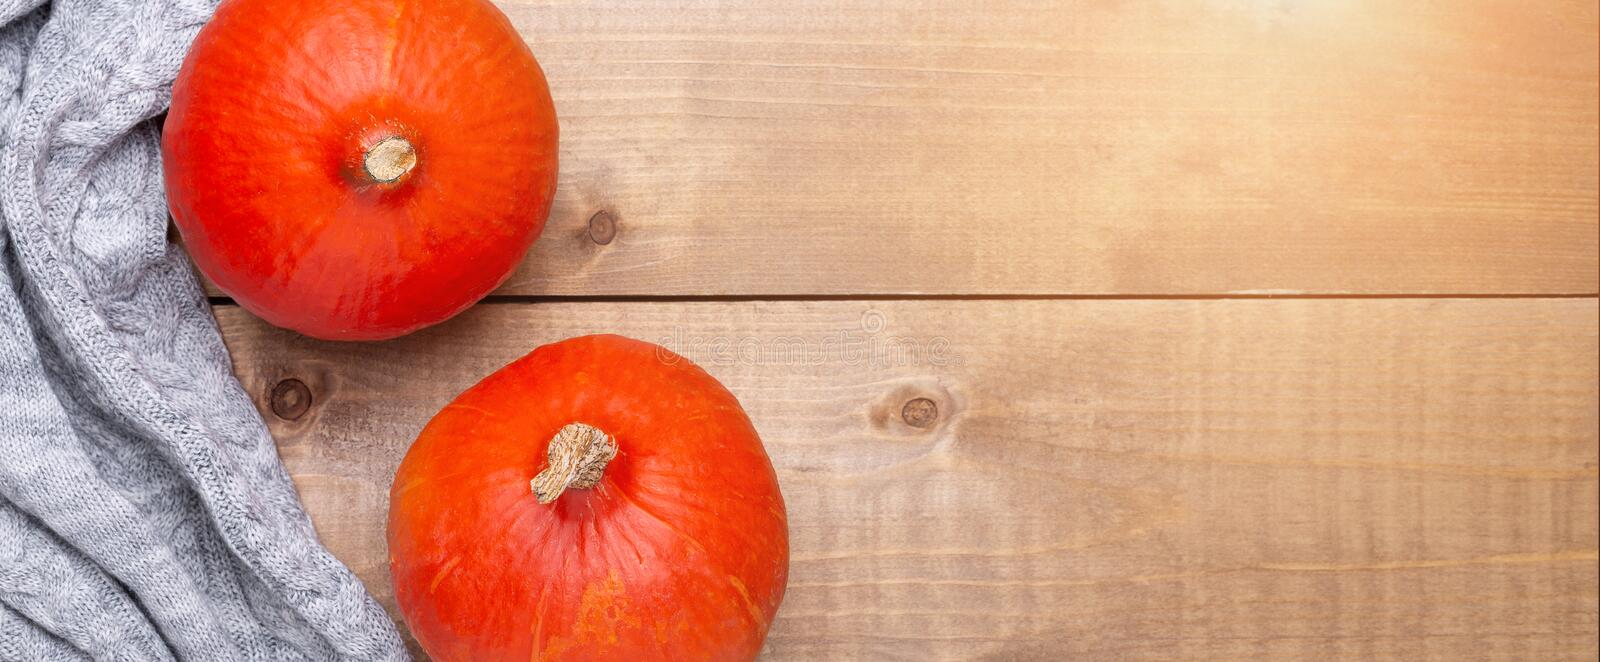 Orange pumpkin, cozy sweater on wooden background. Rustic style. Autumn concept. Top view. Horizontal banner Sun flare. Orange pumpkin, sweater on wooden royalty free stock images